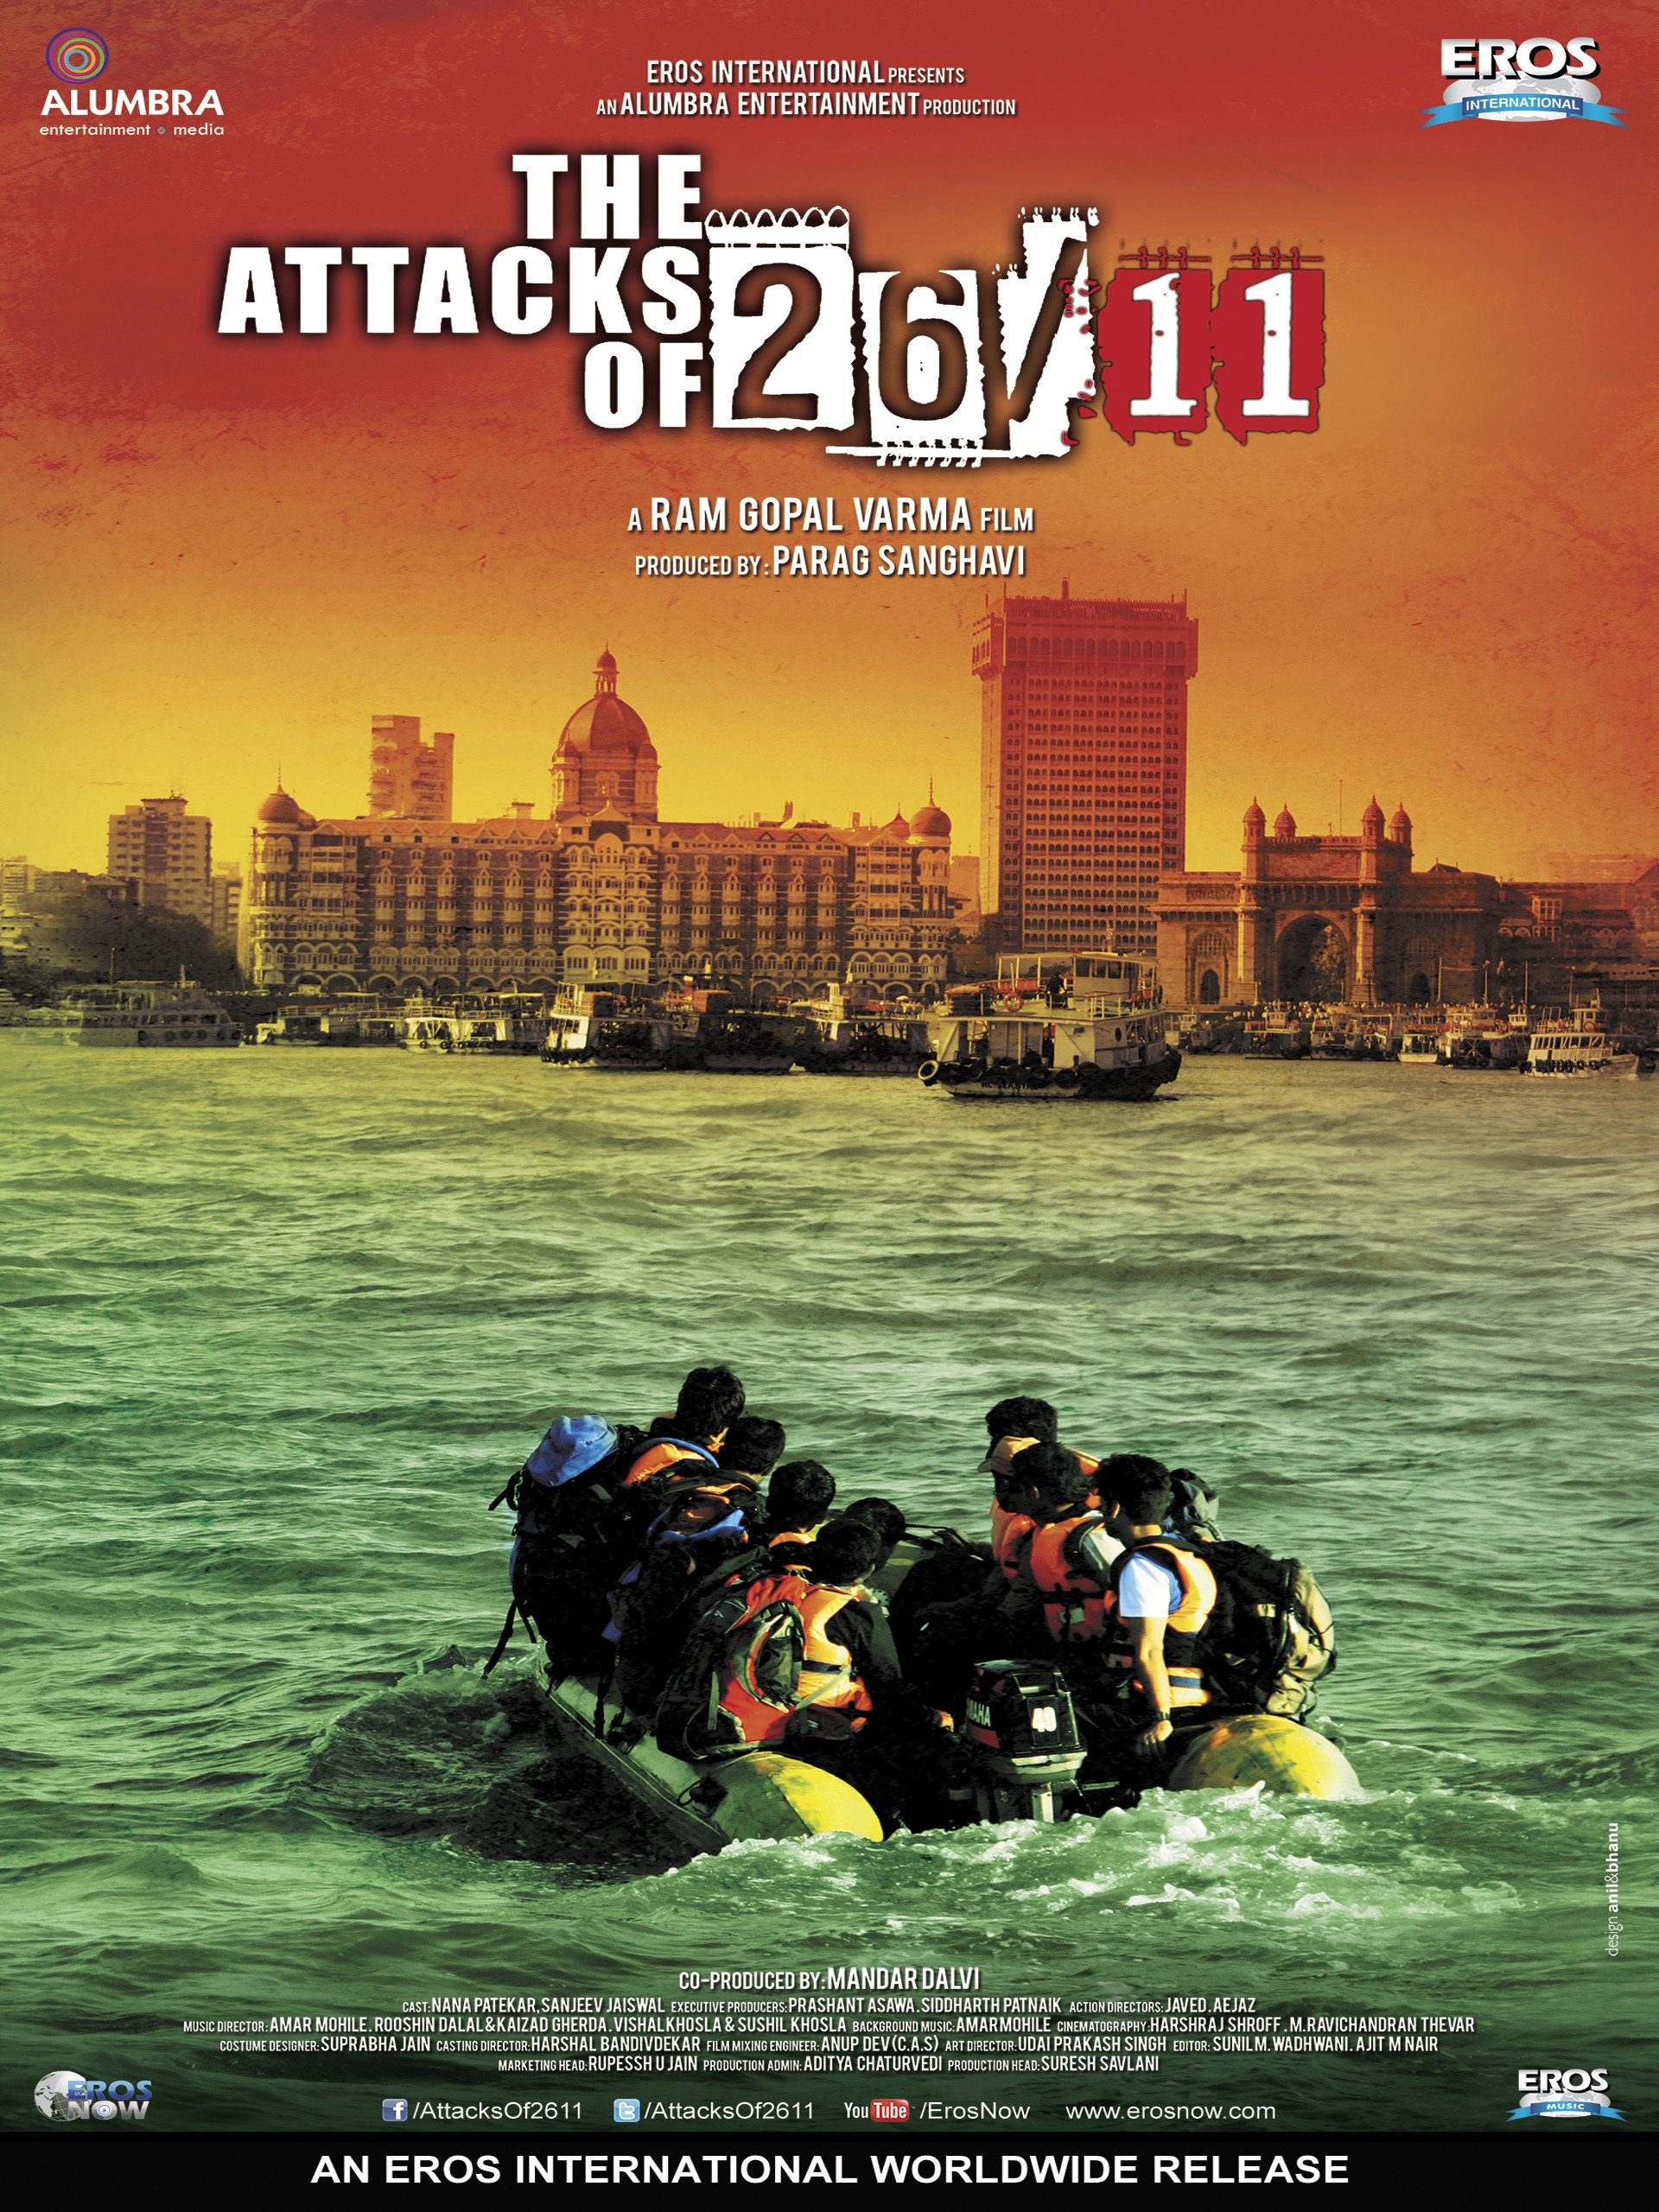 the attacks of 26 11 full movie online free download